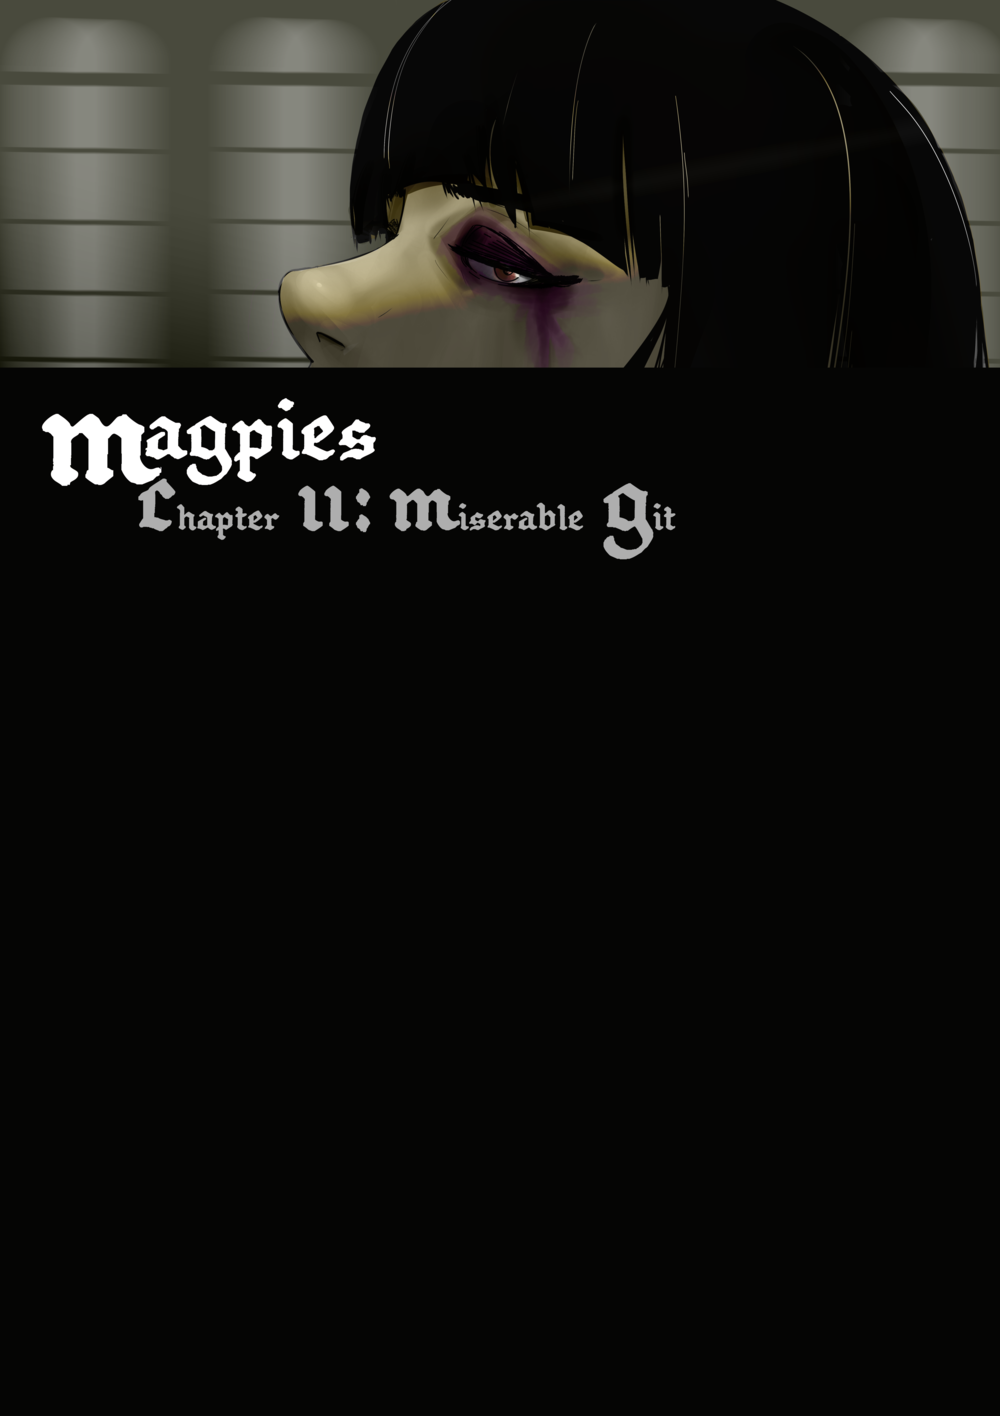 magpieschapter2cover.png